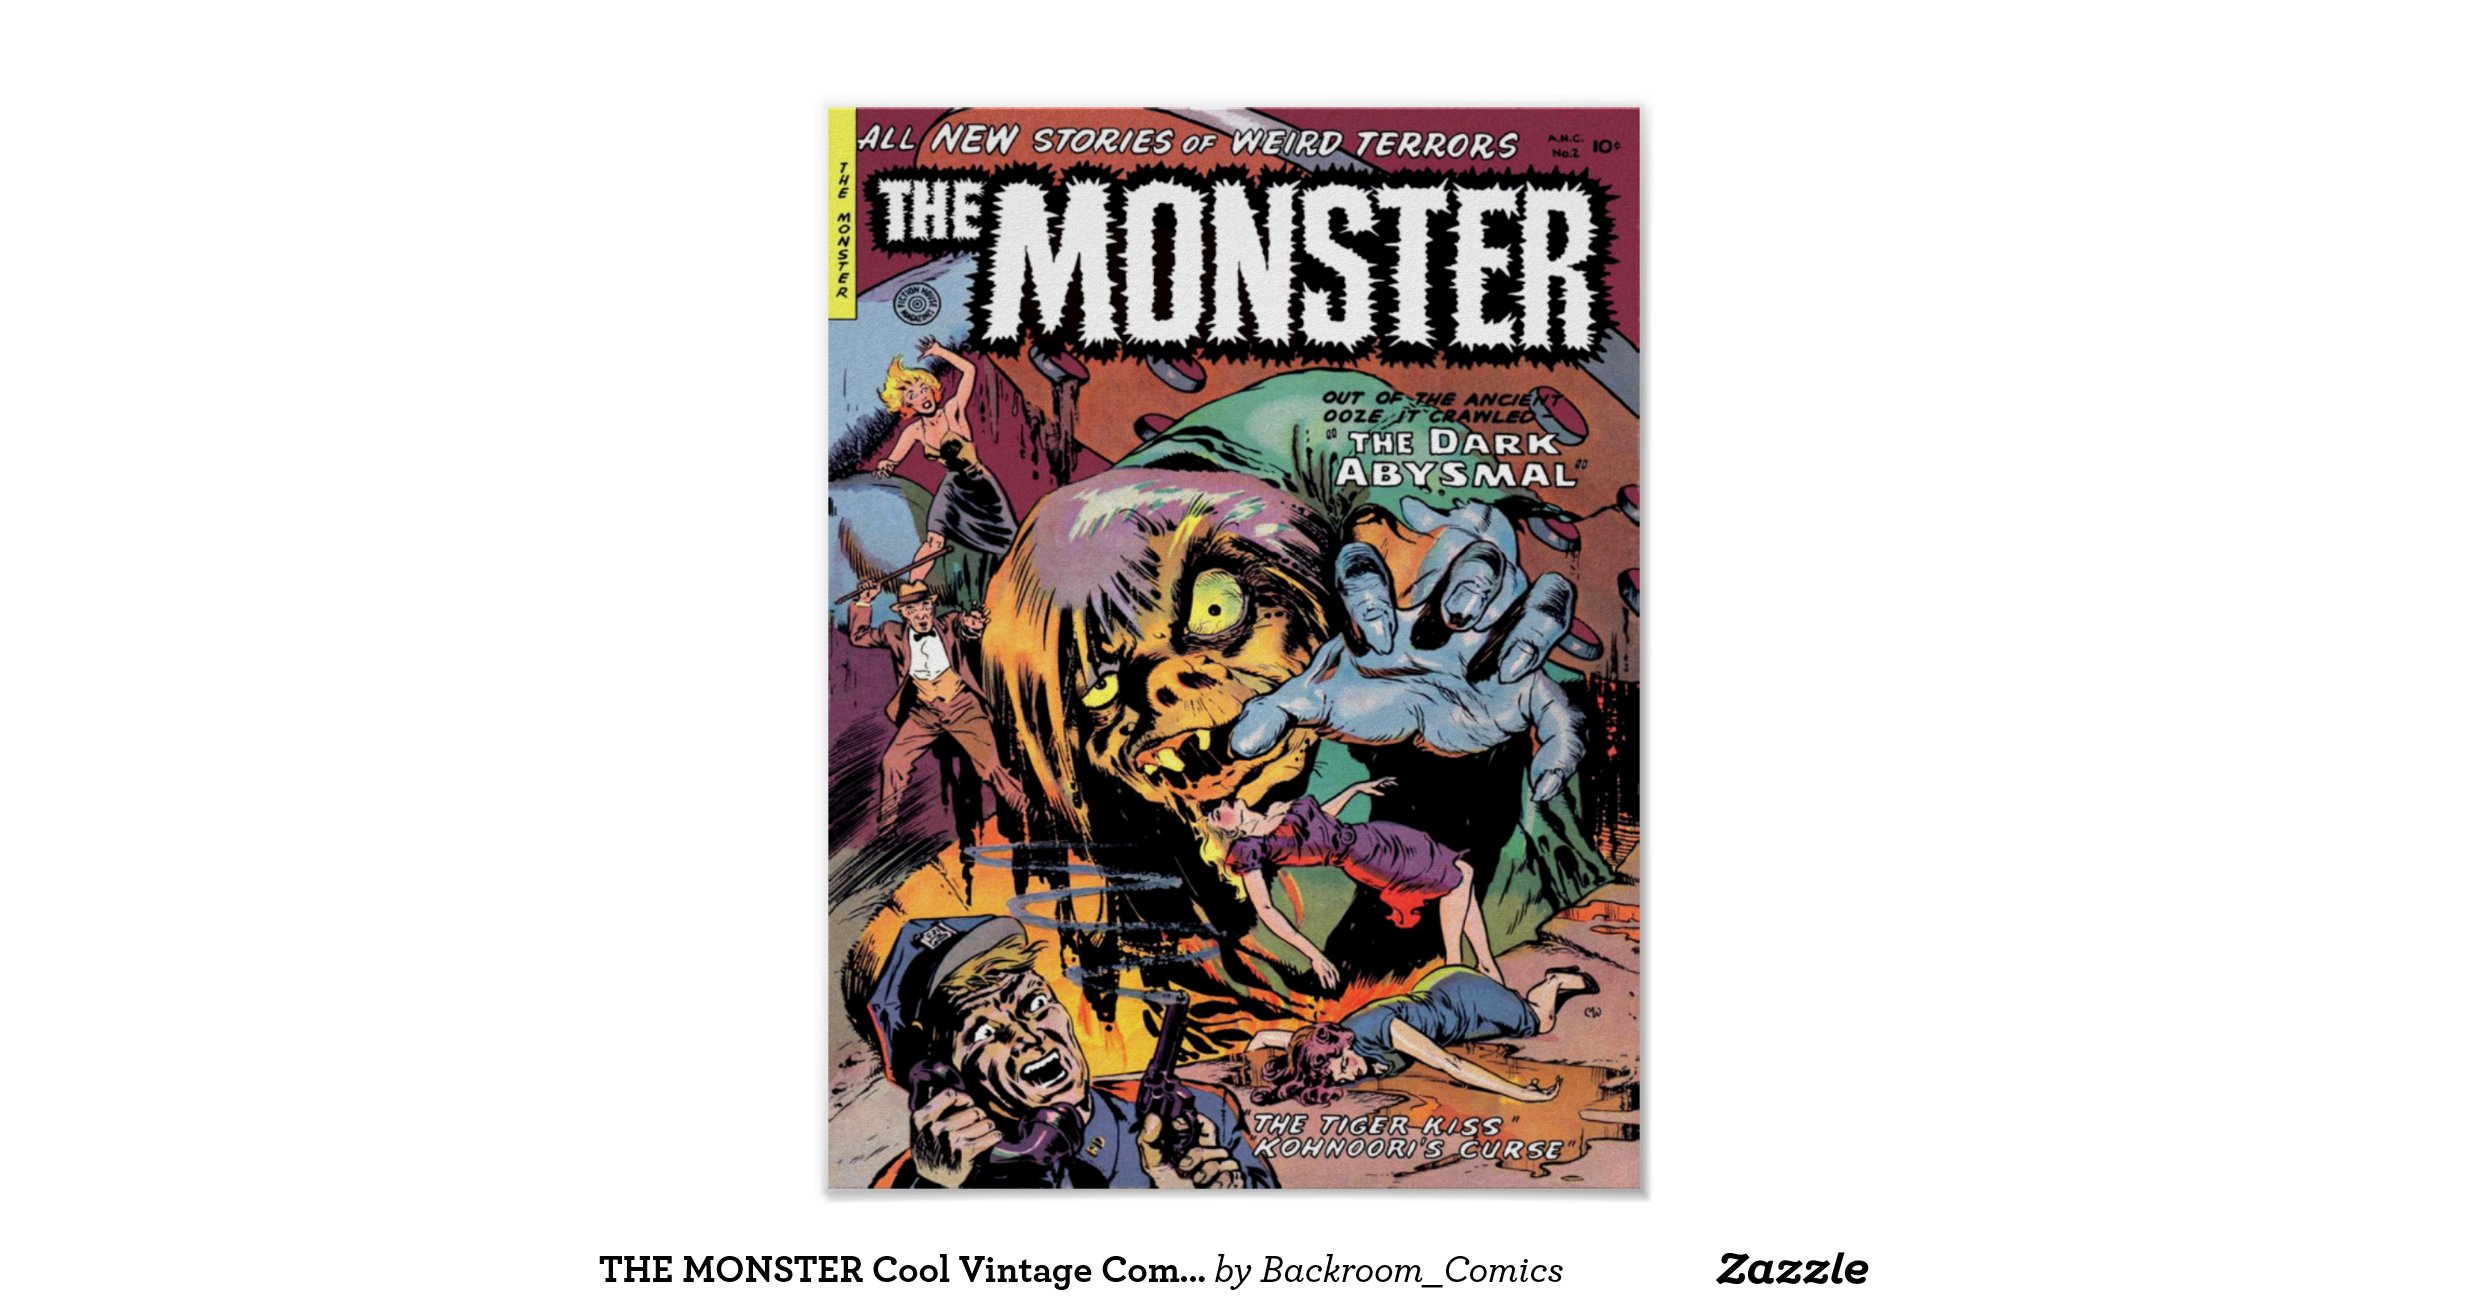 Cool Book Cover Posters ~ The monster cool vintage comic book cover art poster zazzle